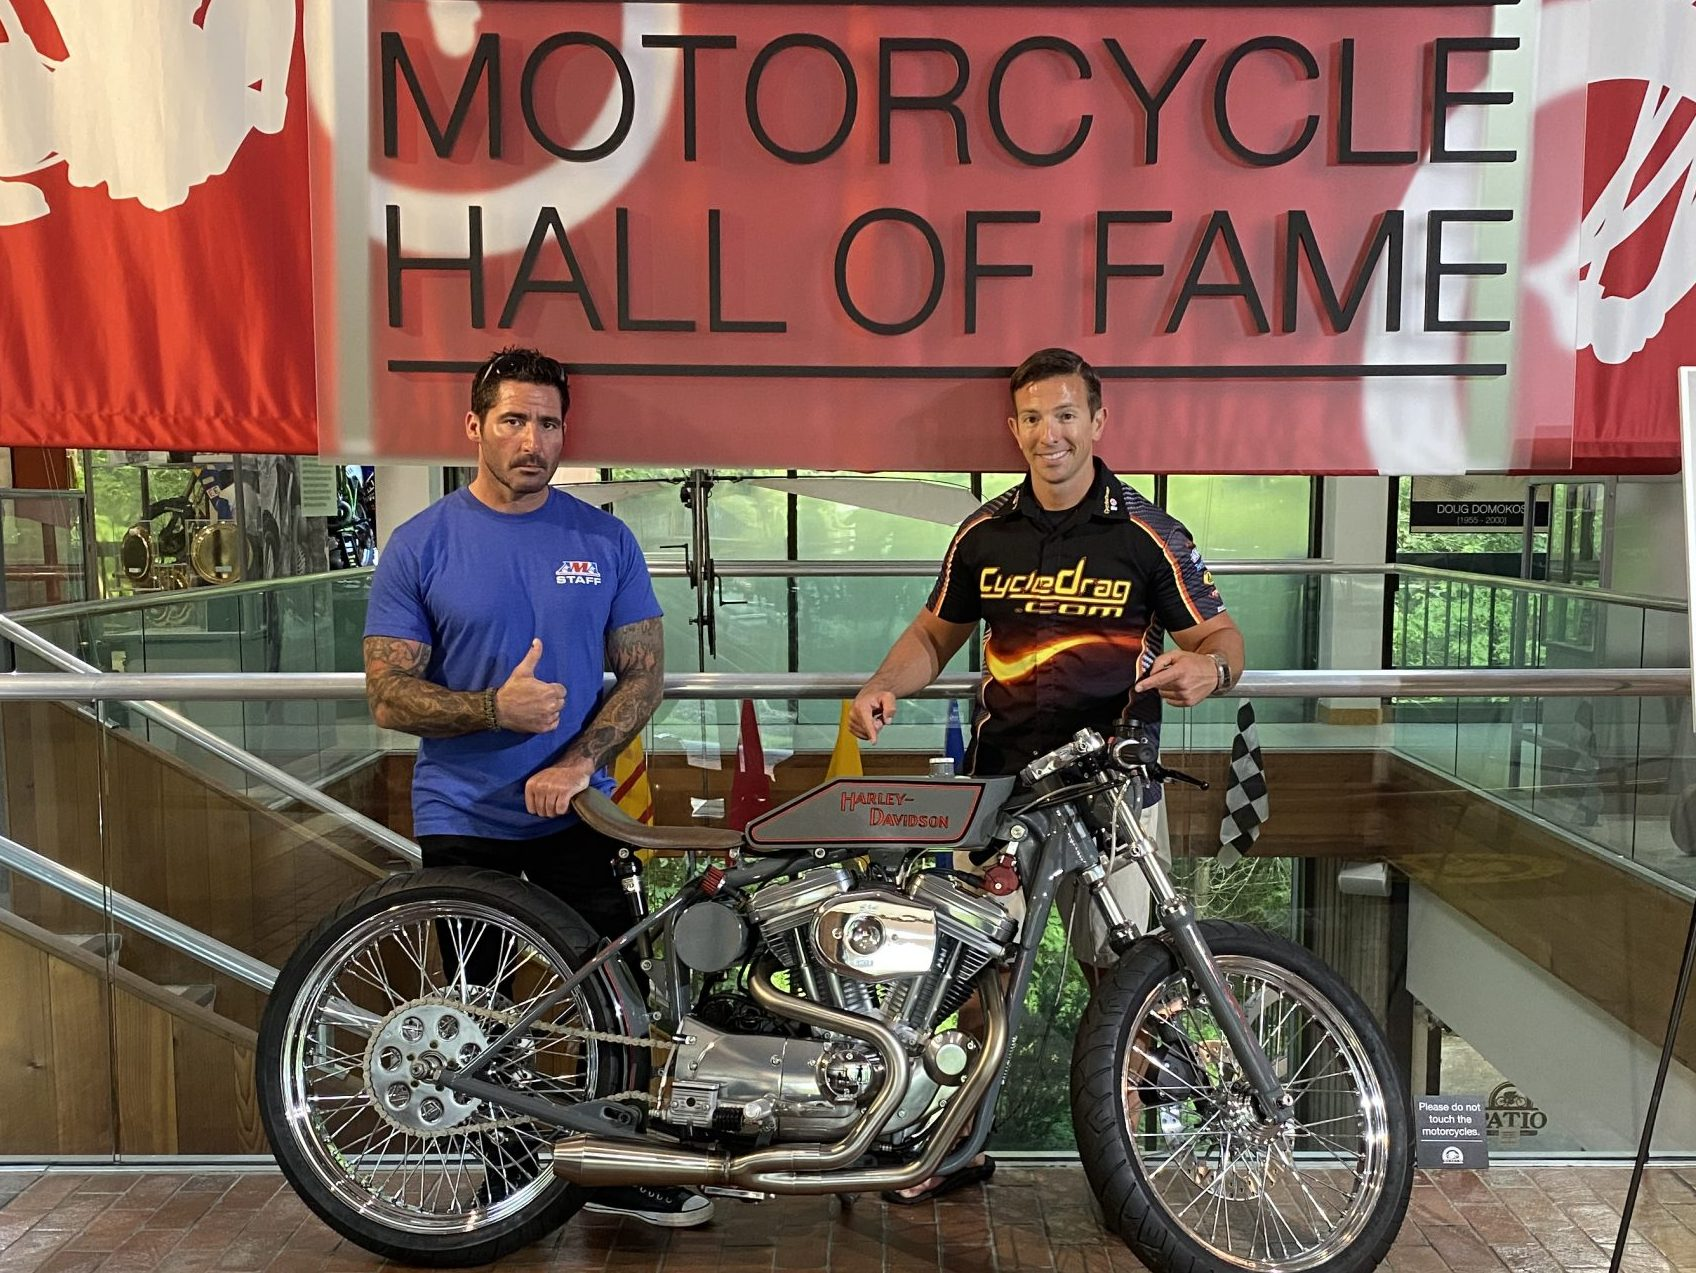 AMA Motorcycle Hall of Fame Museum